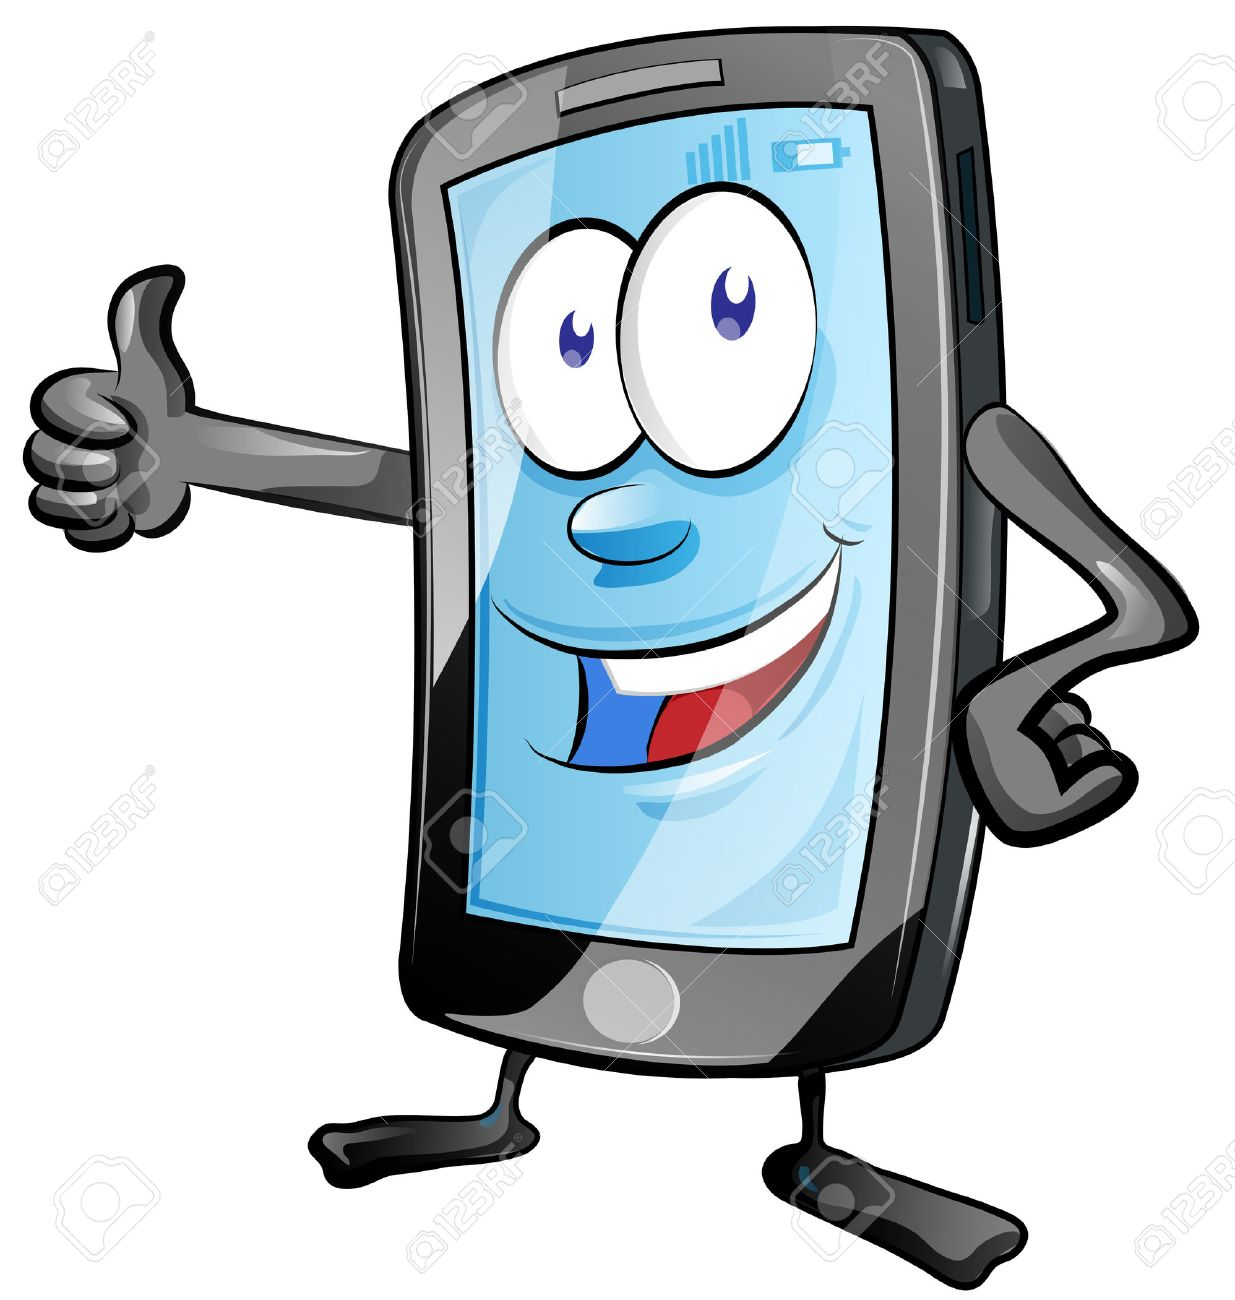 1235x1300 Telephone Cartoon Stock Photos. Royalty Free Telephone Cartoon